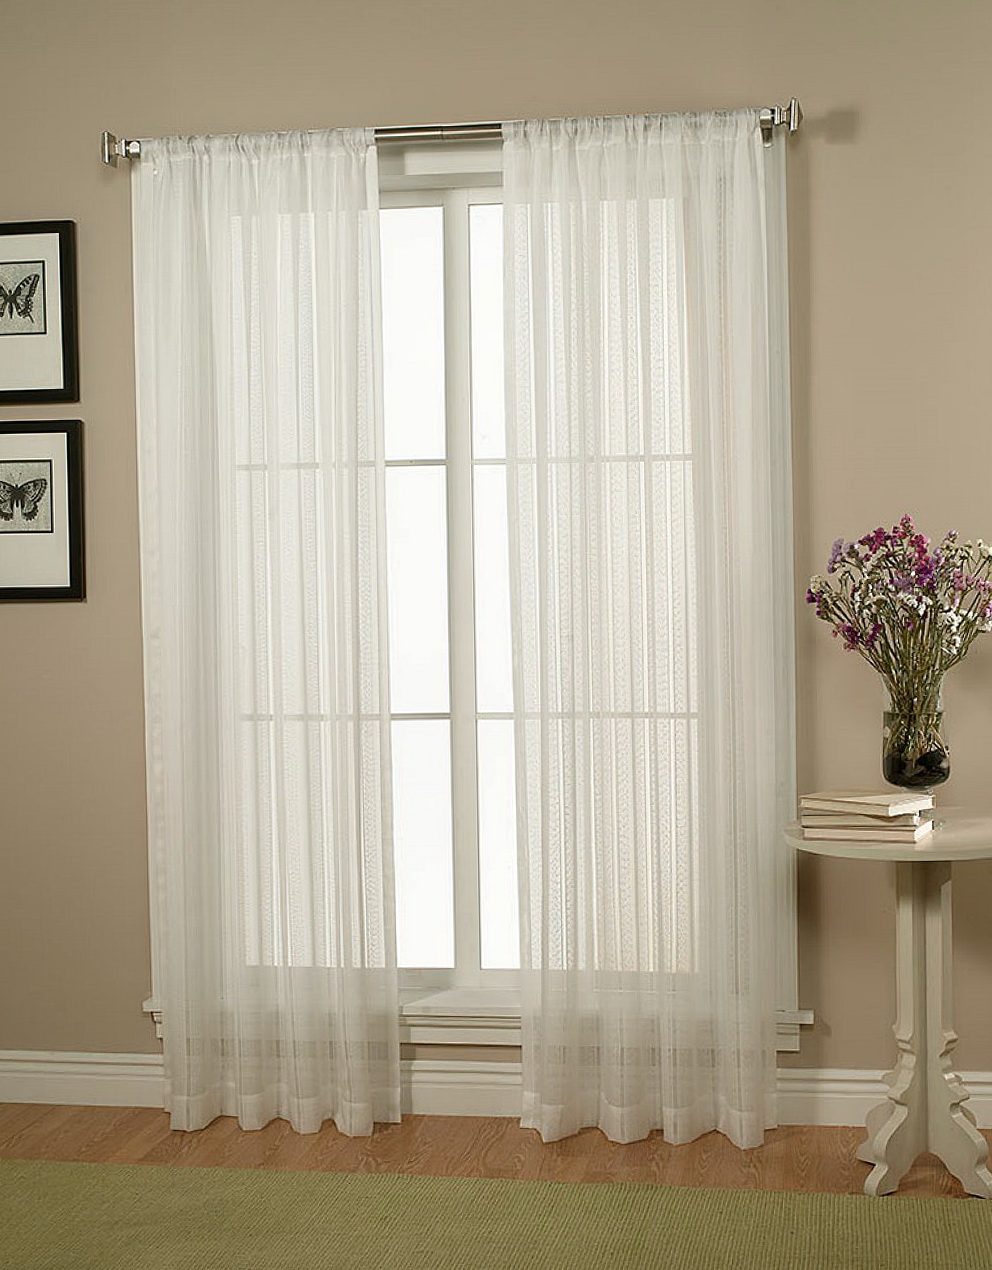 sheer curtains in living room white sheer curtains living room home design ideas 19793